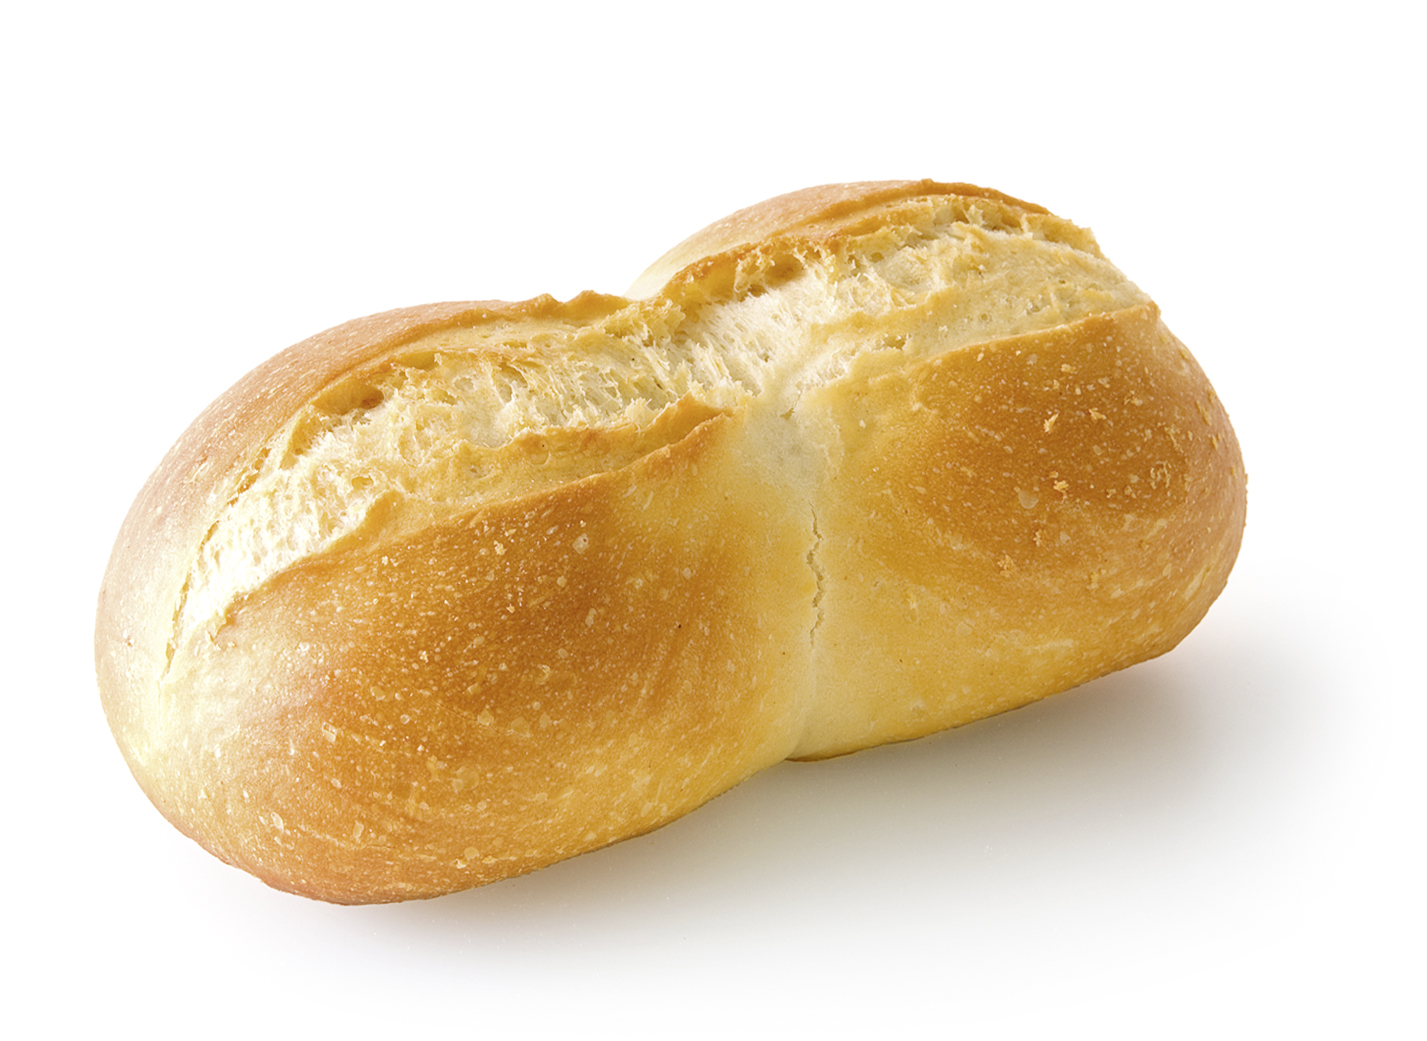 Double Roll - Two small wheat bakeries, baked against each other